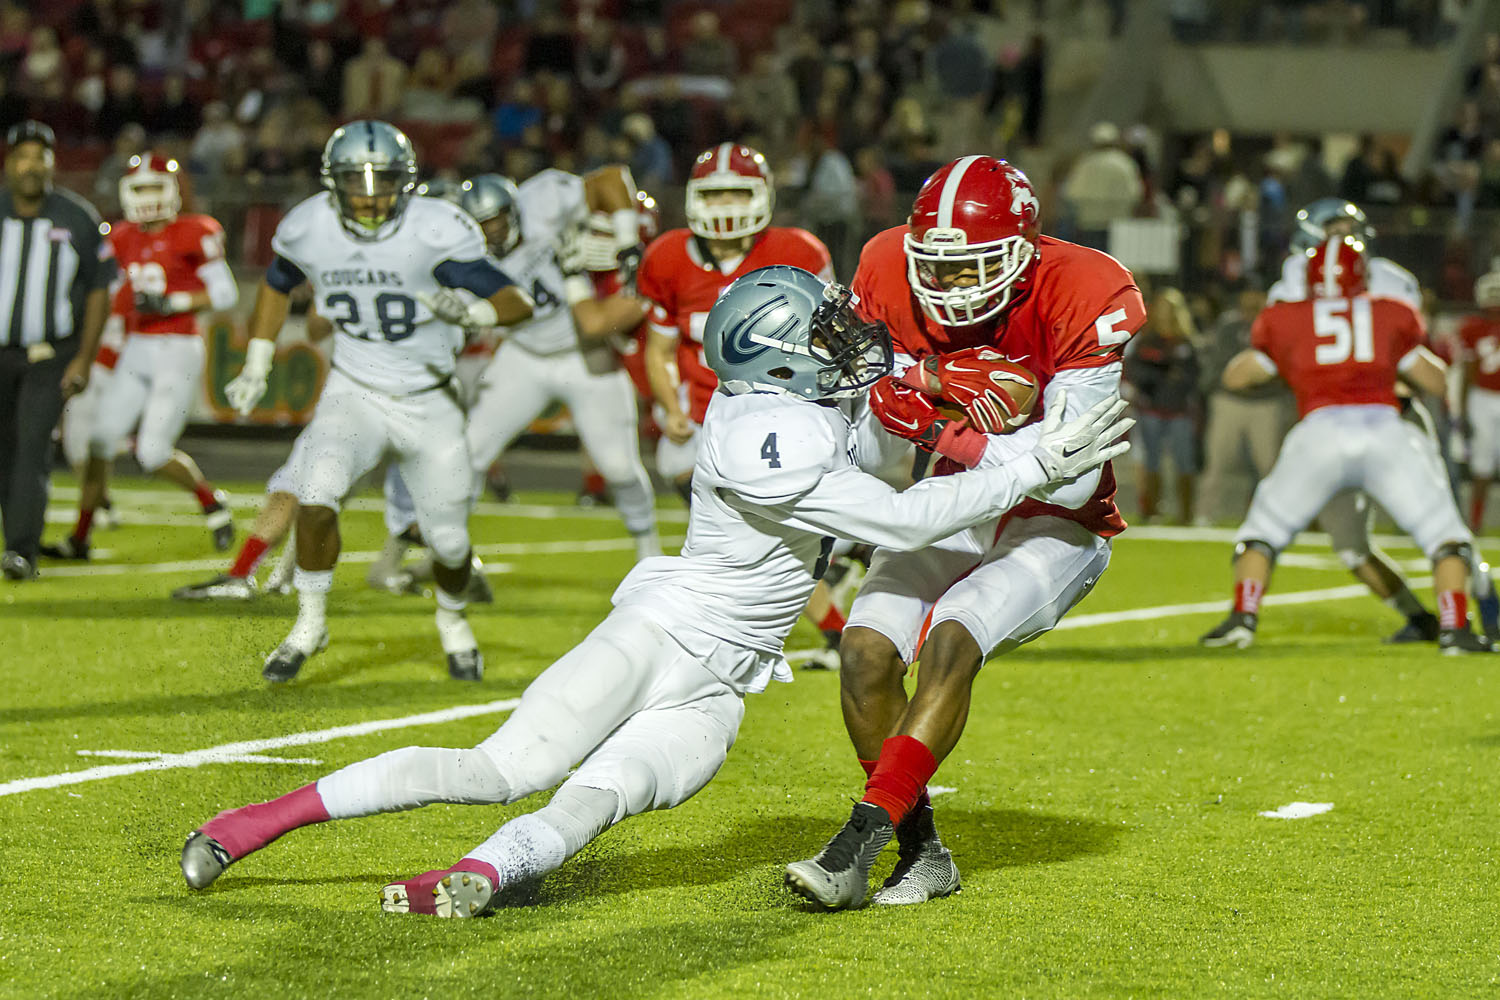 Clay-Chalkville's Torrence Willis makes college decision